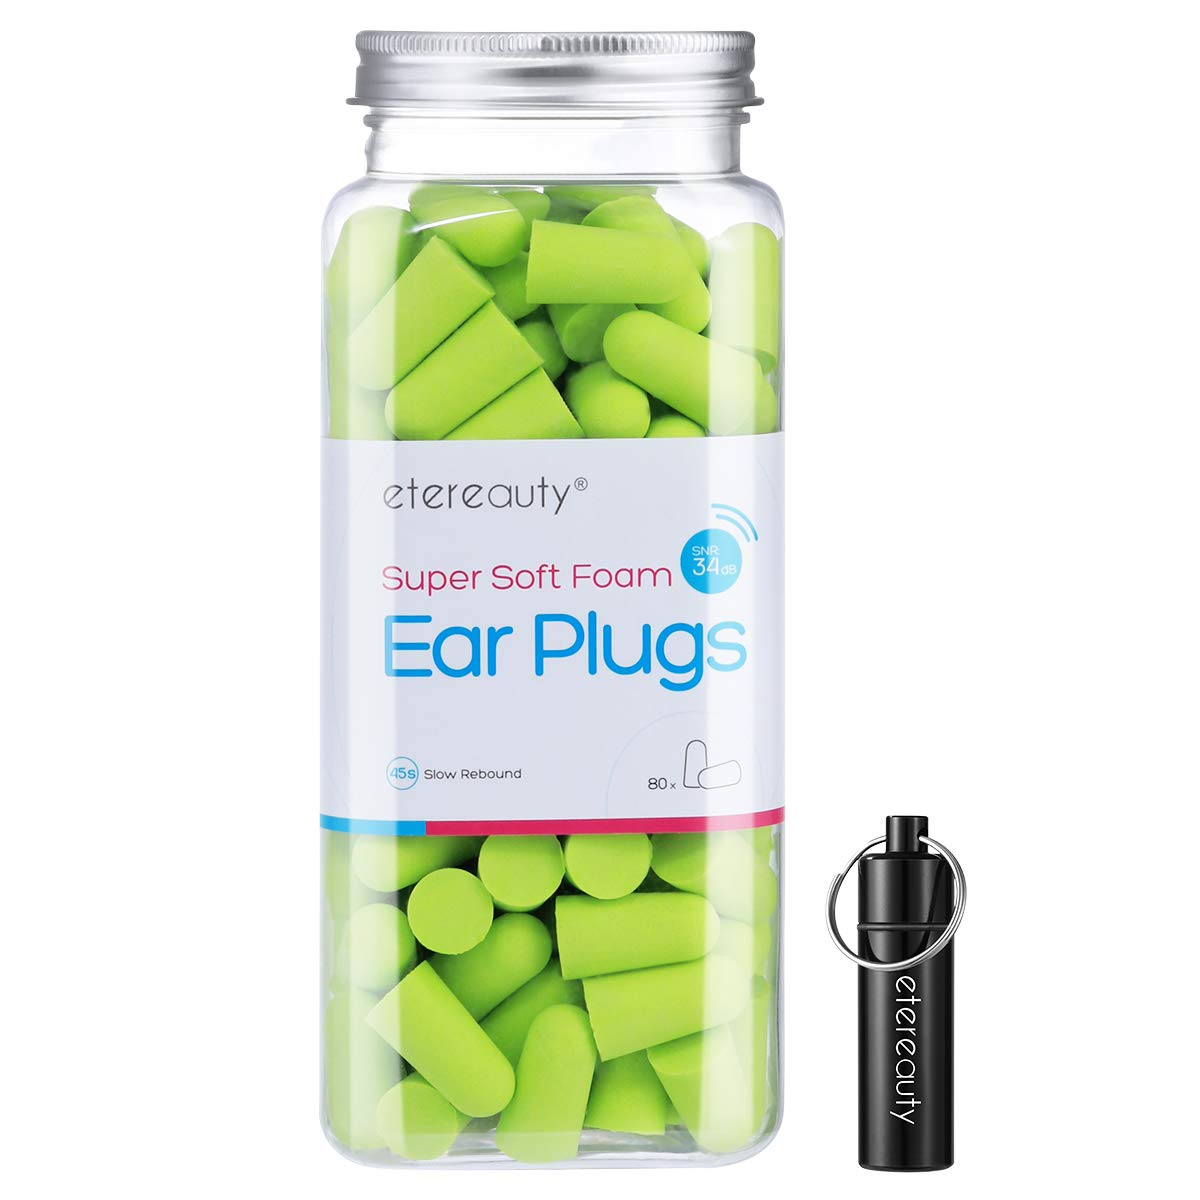 Etereauty Foam Earplugs 80 Pairs 32dB NRR Ear Plugs Soft Earplugs